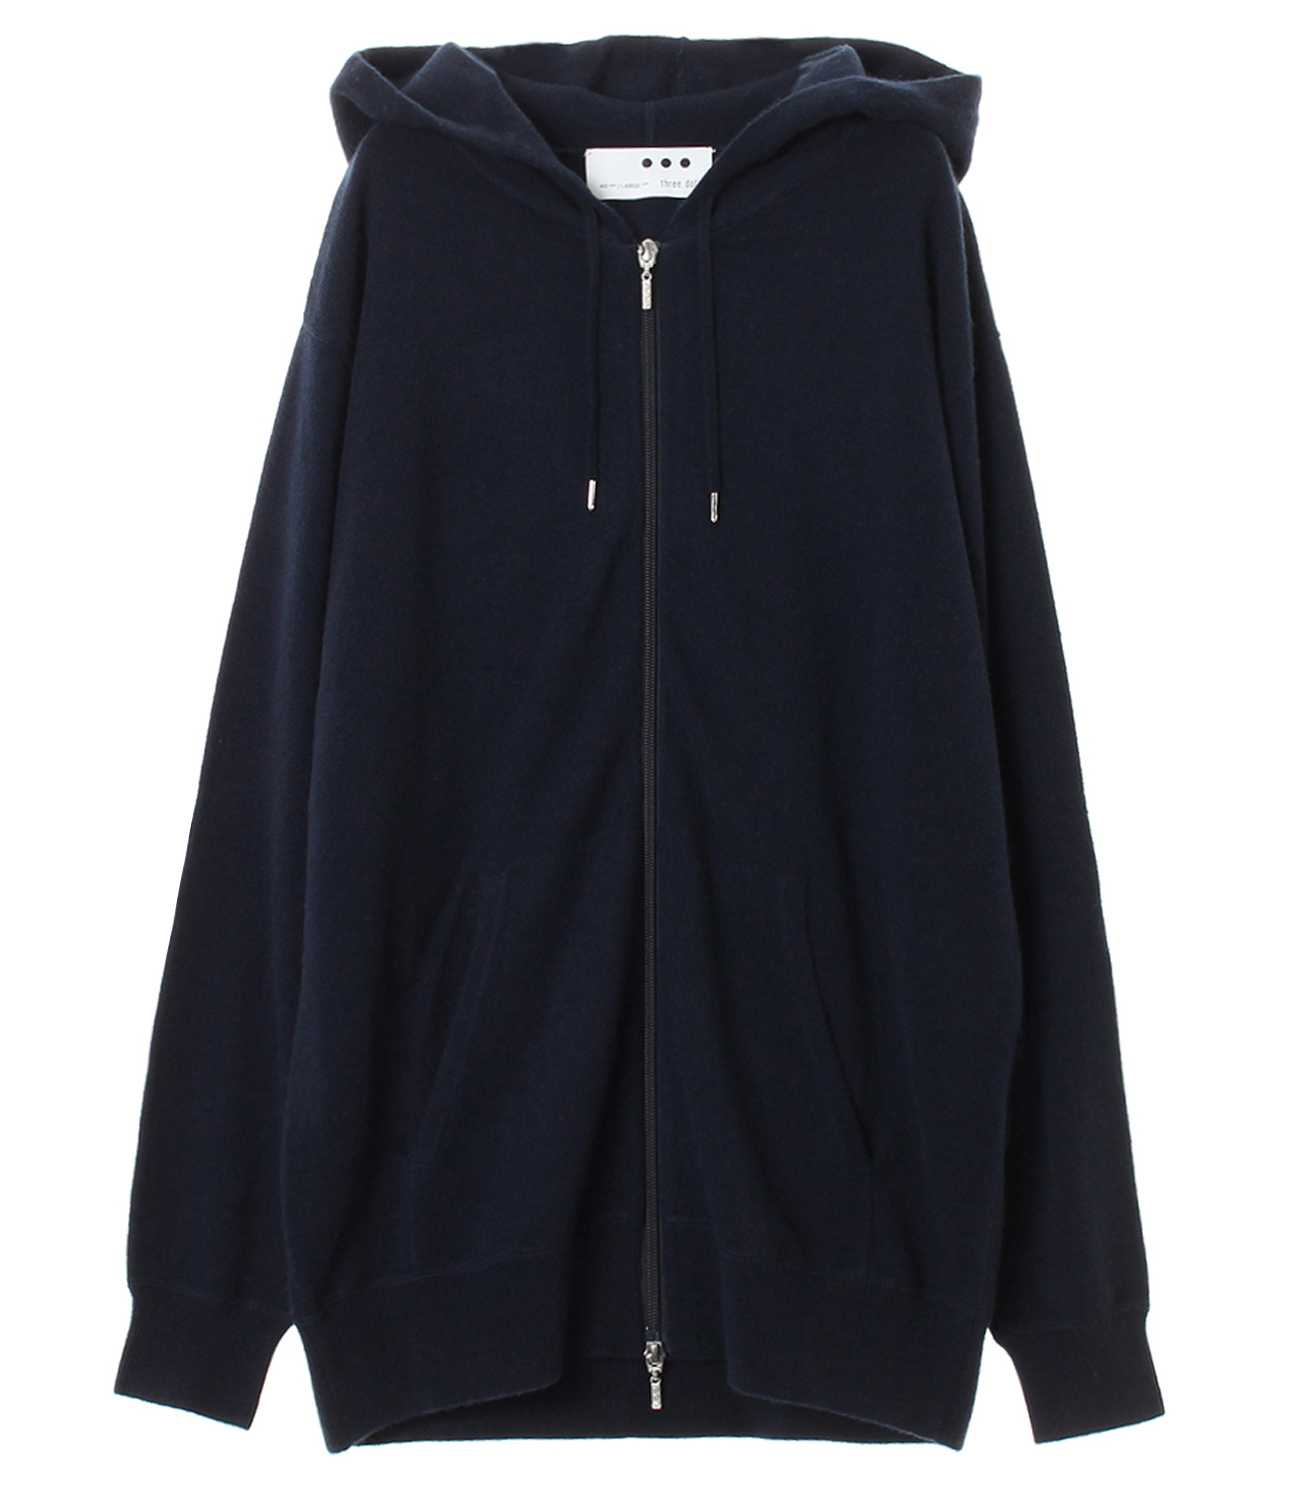 Men's pure cashmere zip parka 詳細画像 navy 1